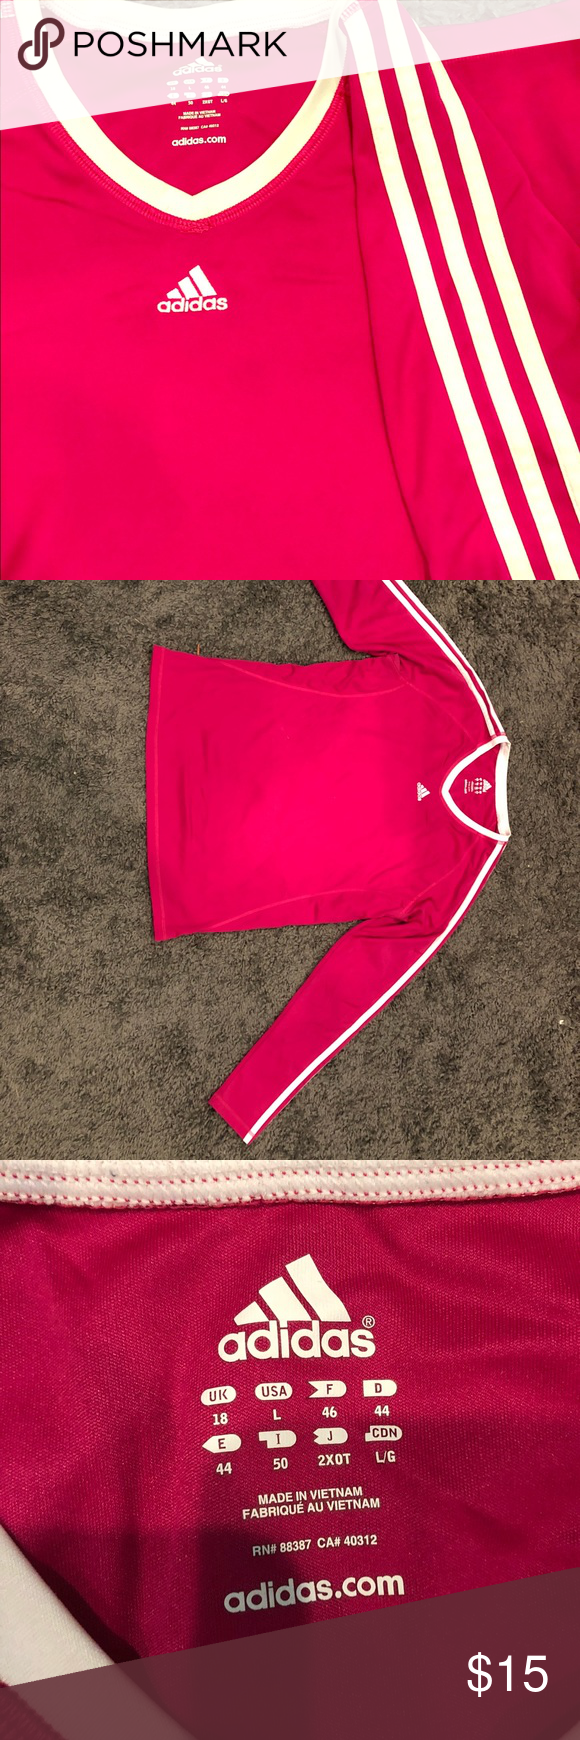 58d4614acc45 Raspberry Long Sleeve Adidas Workout Top Lots of life left! adidas Tops  Tees - Long